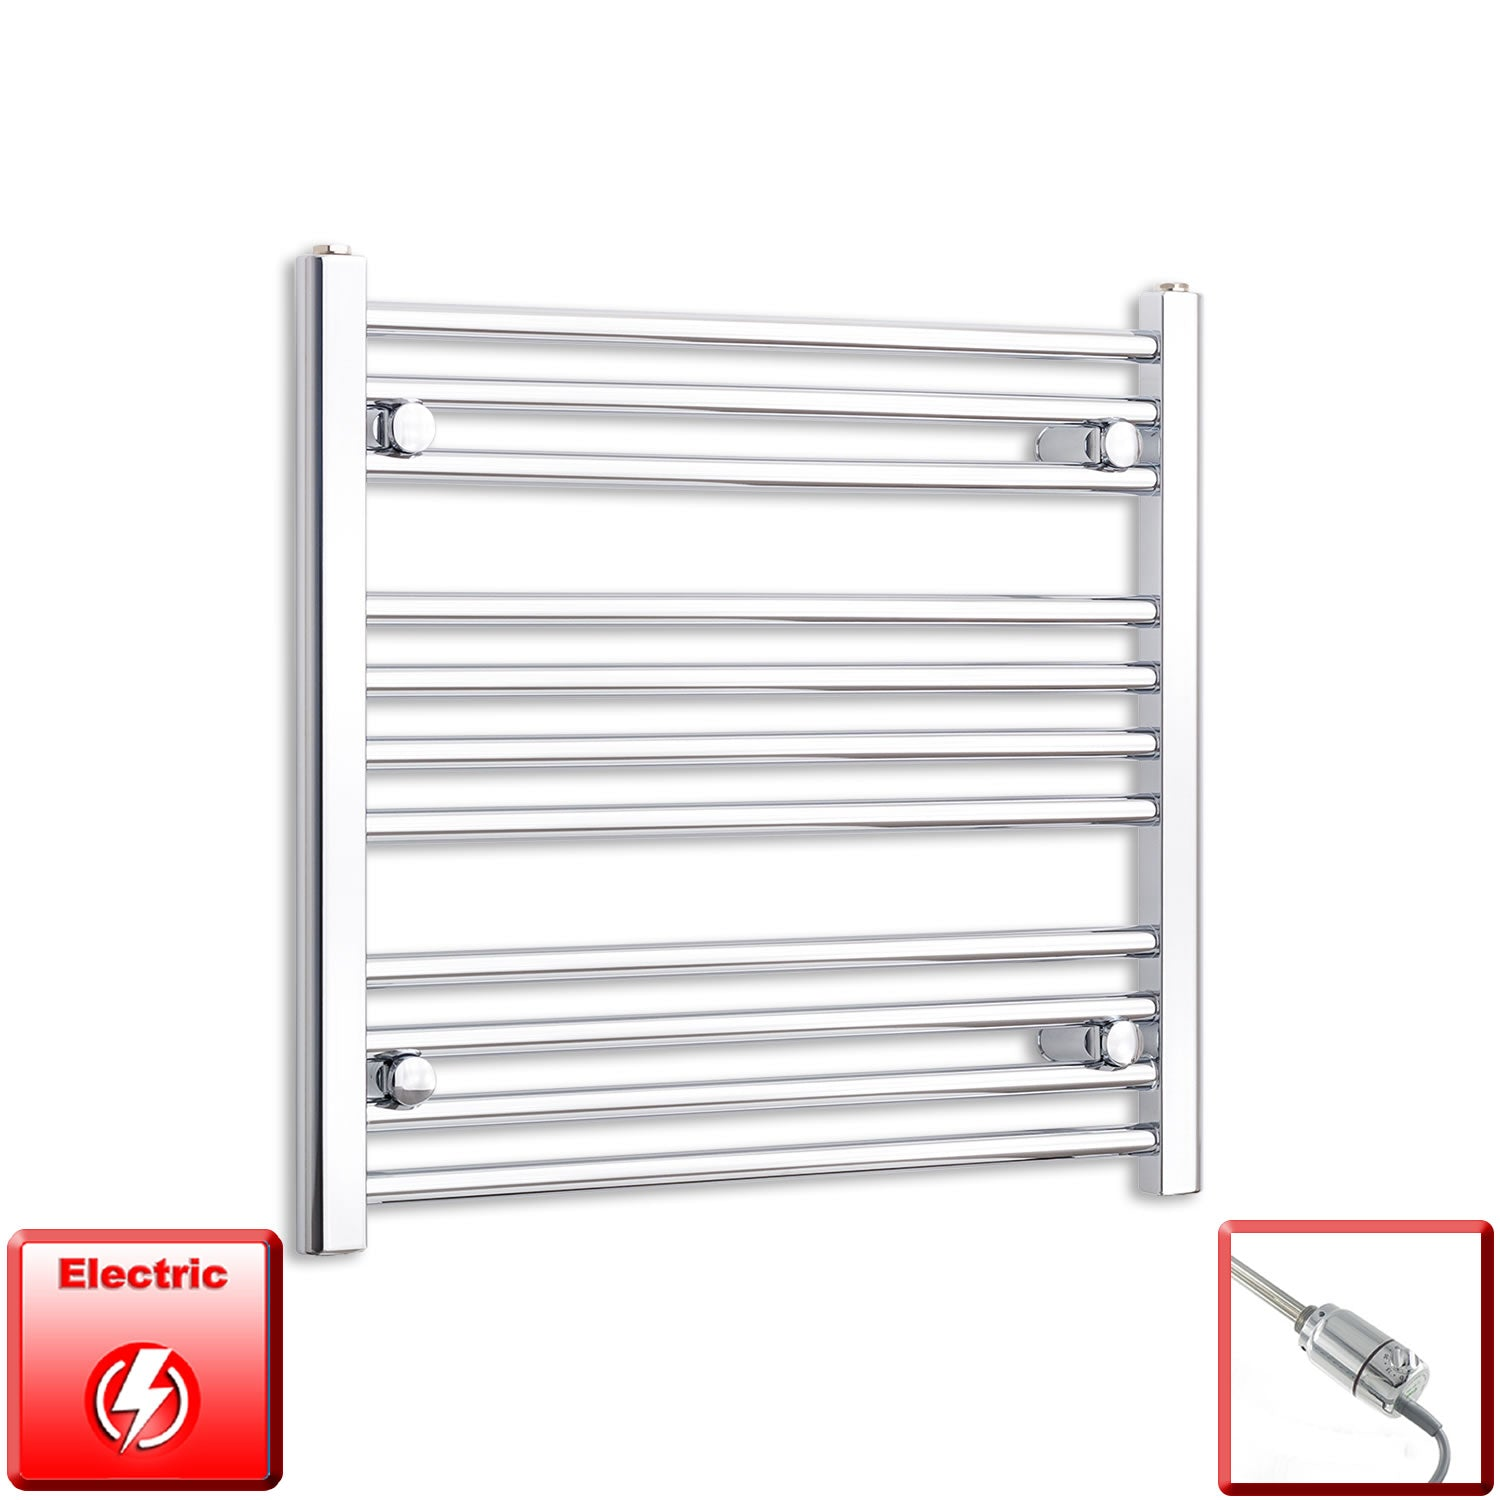 700mm Wide 600mm High Flat Or Curved Chrome Pre-Filled Electric Heated Towel Rail Radiator HTR,GT Thermostatic / Straight